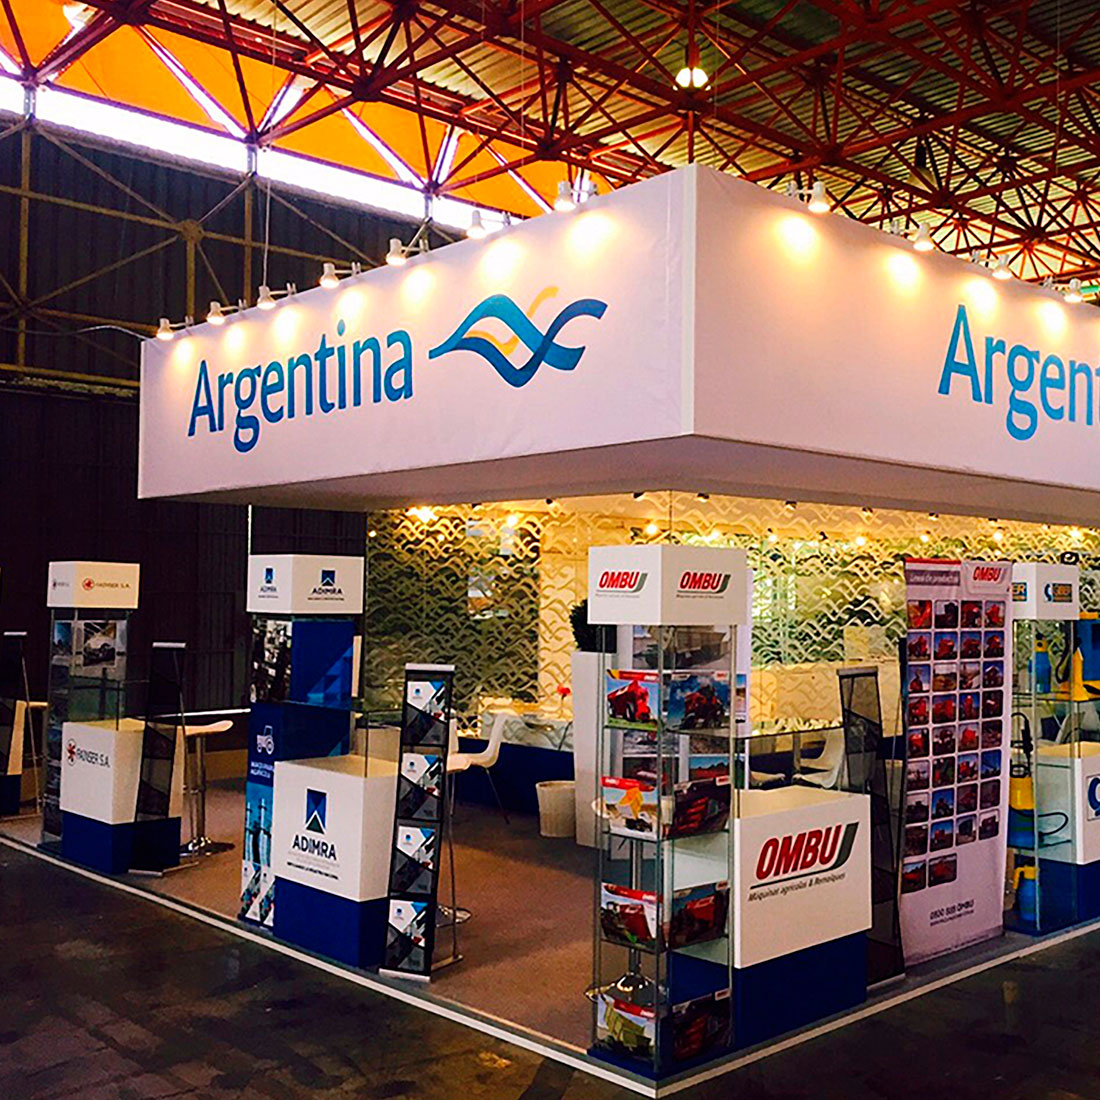 Diseño de stand para Argentina, montaje de a+j district